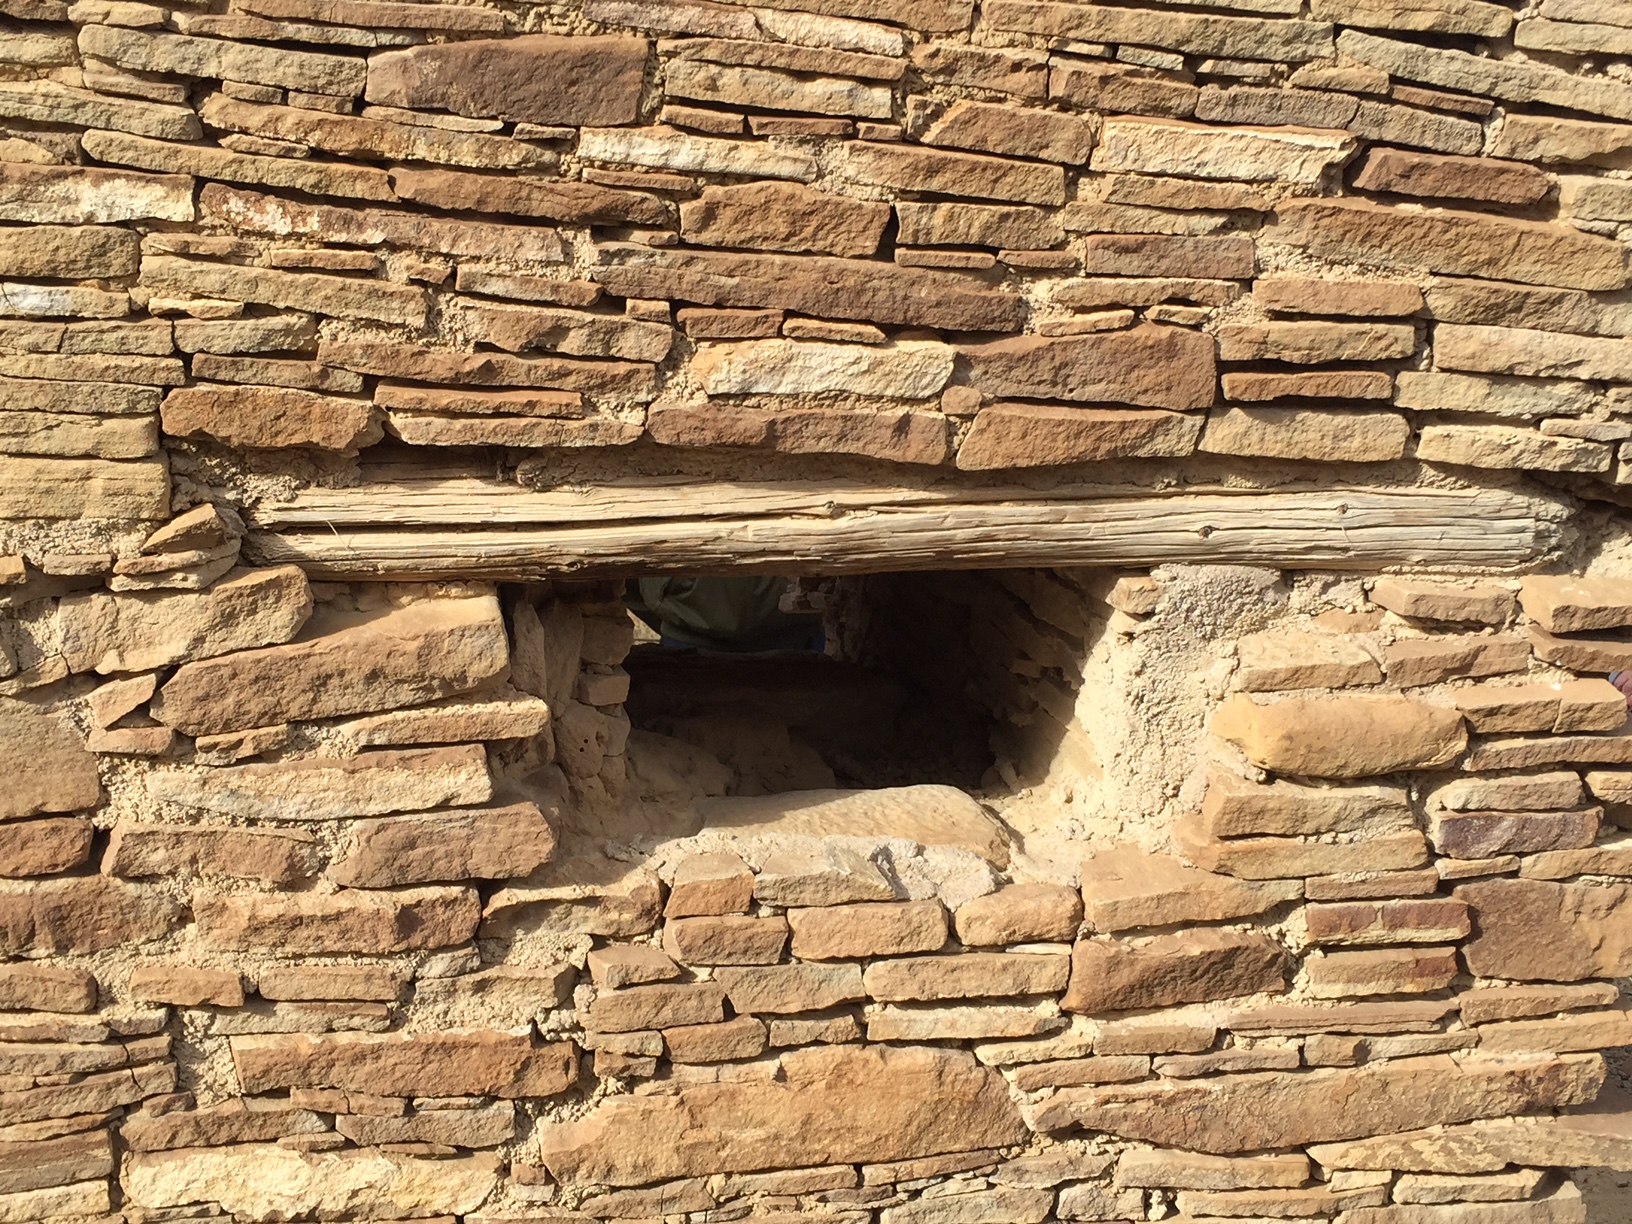 Window at Chaco